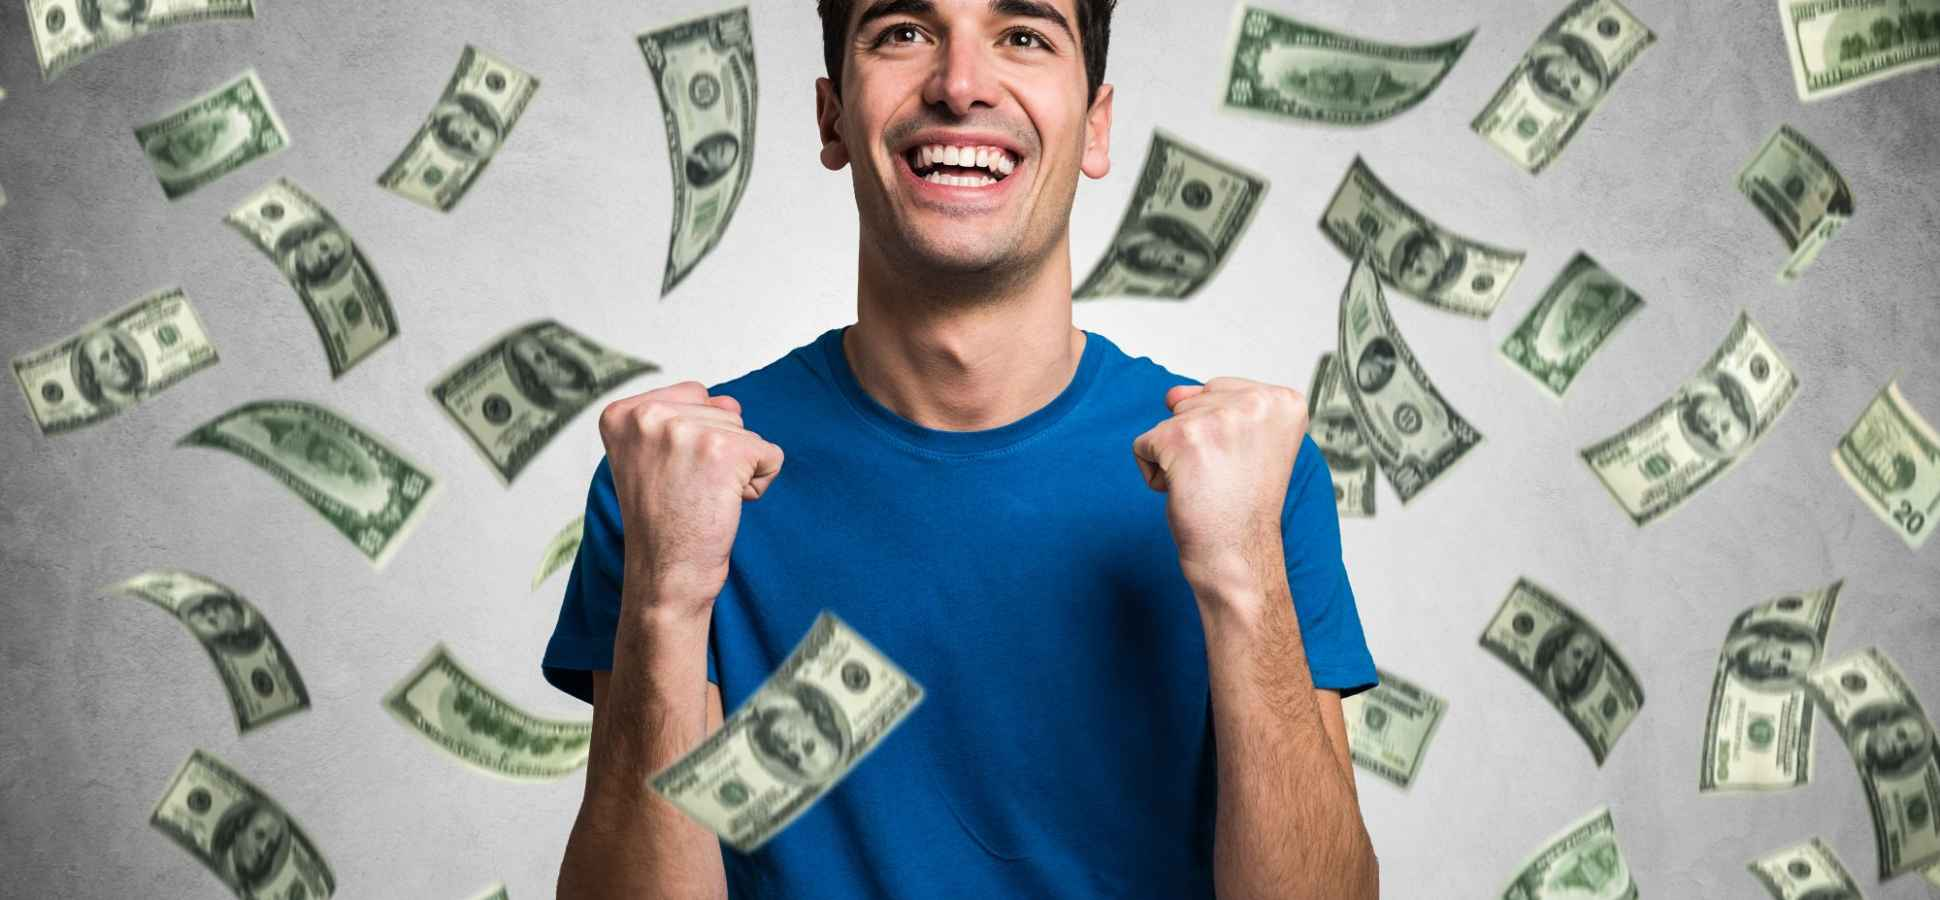 The Secret to Making More Money Could Actually Be This Simple